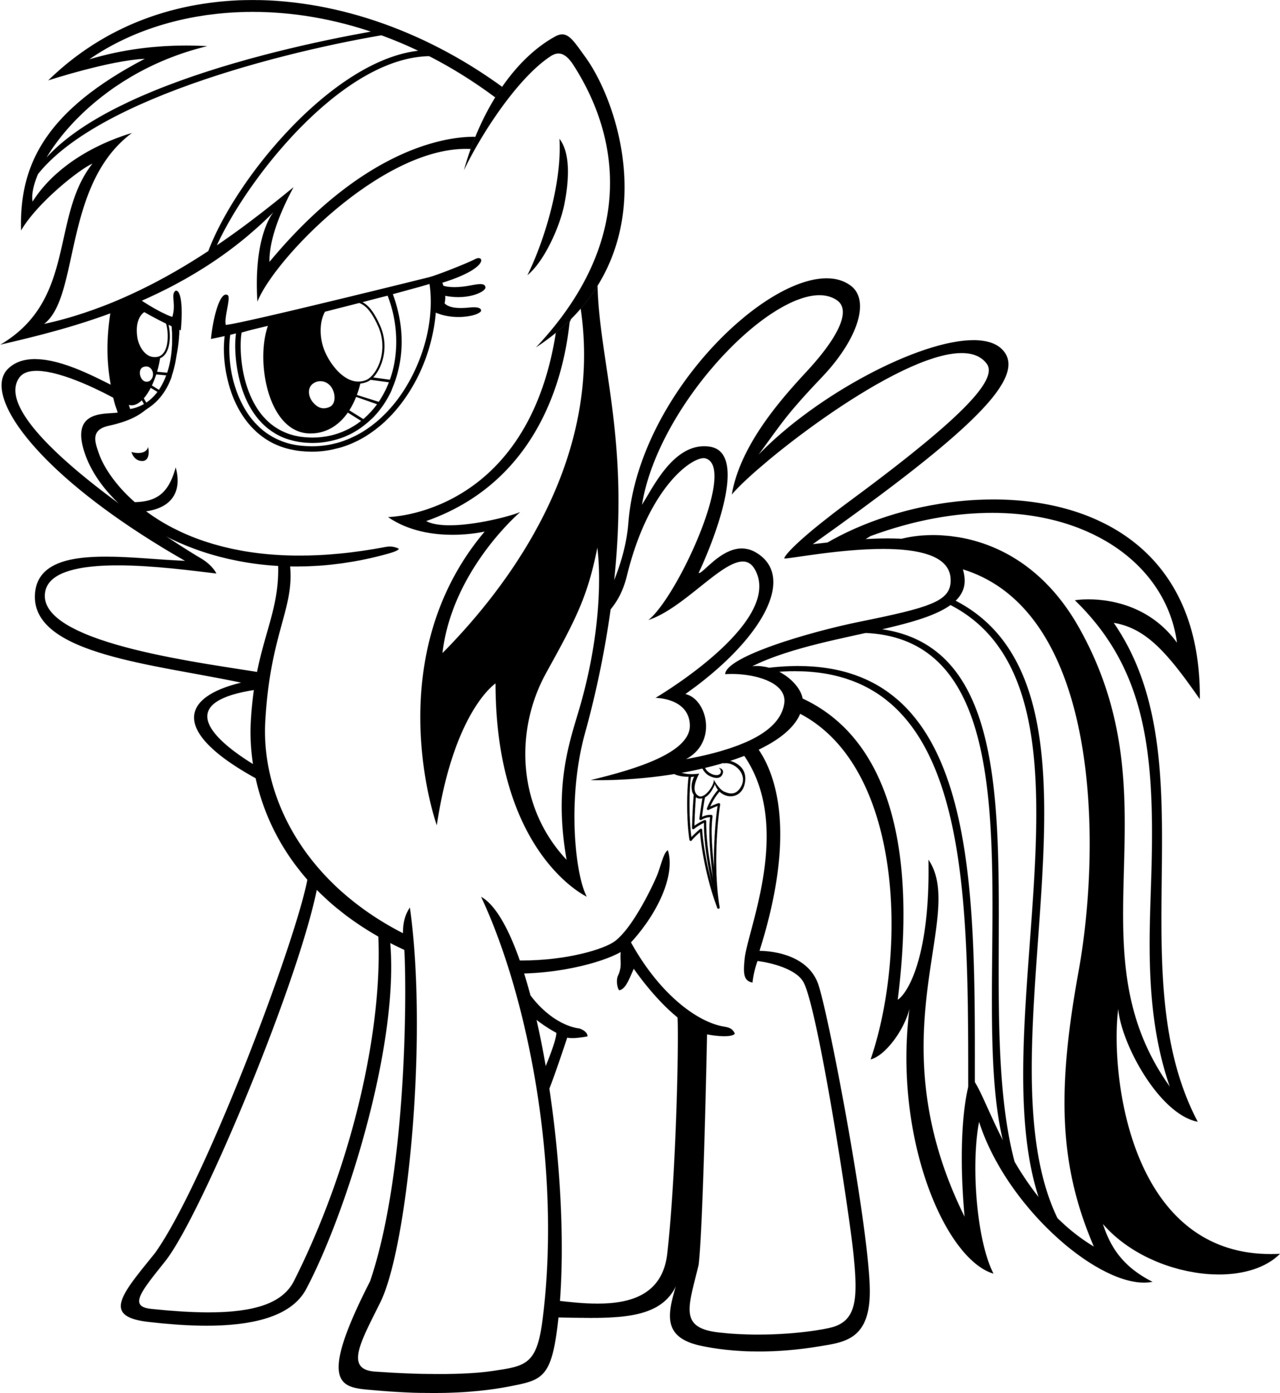 Best Free Coloring Sheets For Kids Printables  Rainbow Dash Coloring Pages Best Coloring Pages For Kids